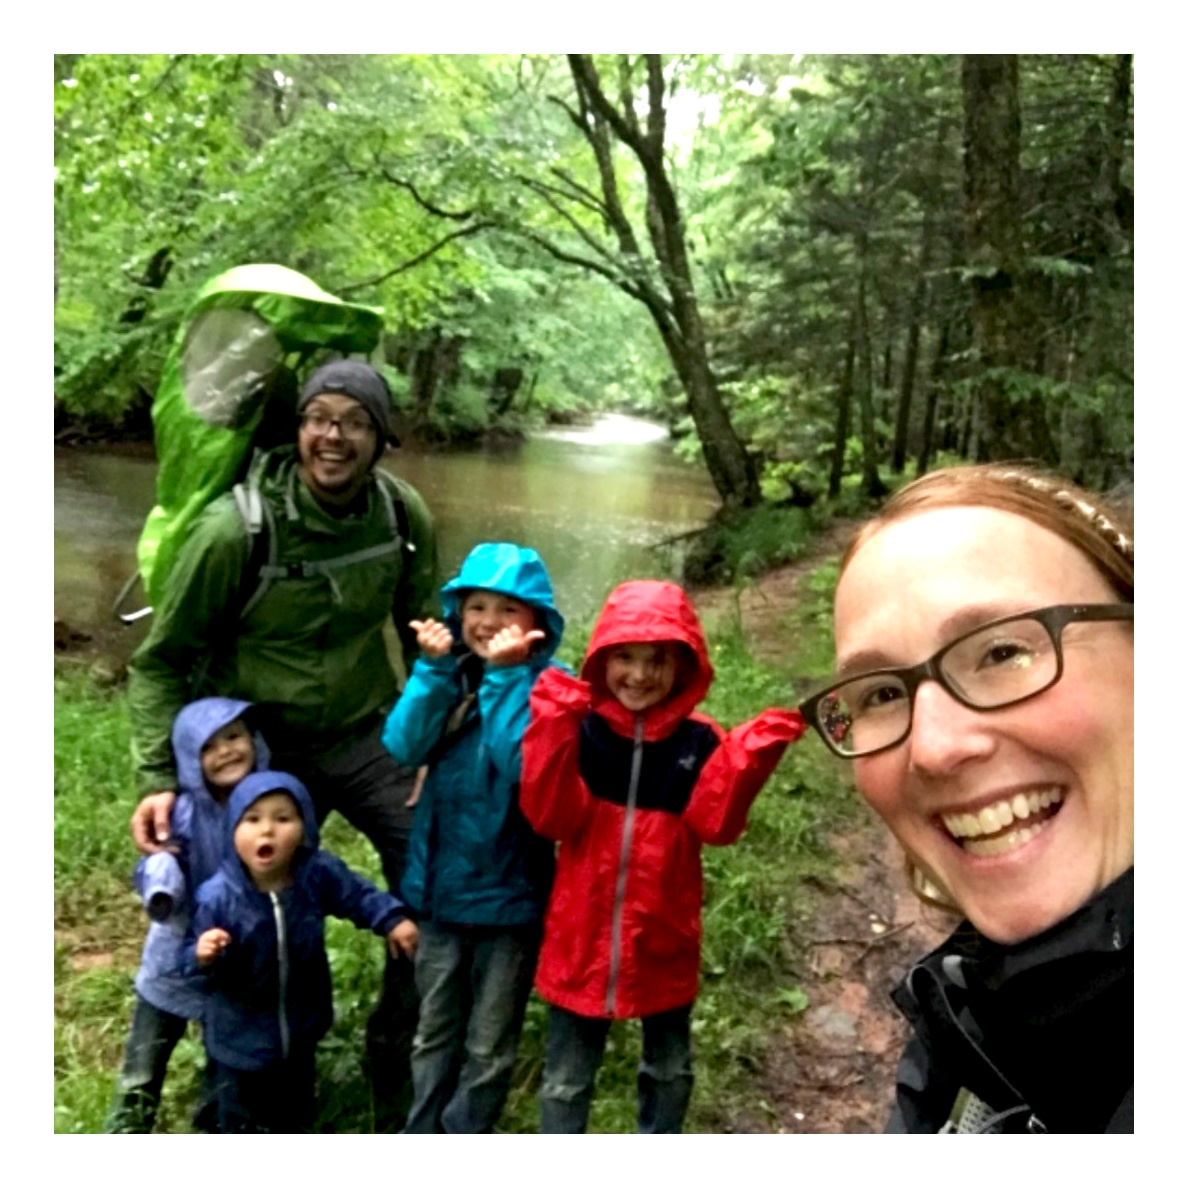 Our family enjoying a hike in the rain. Sometimes the challenging times can be the greatest memories!